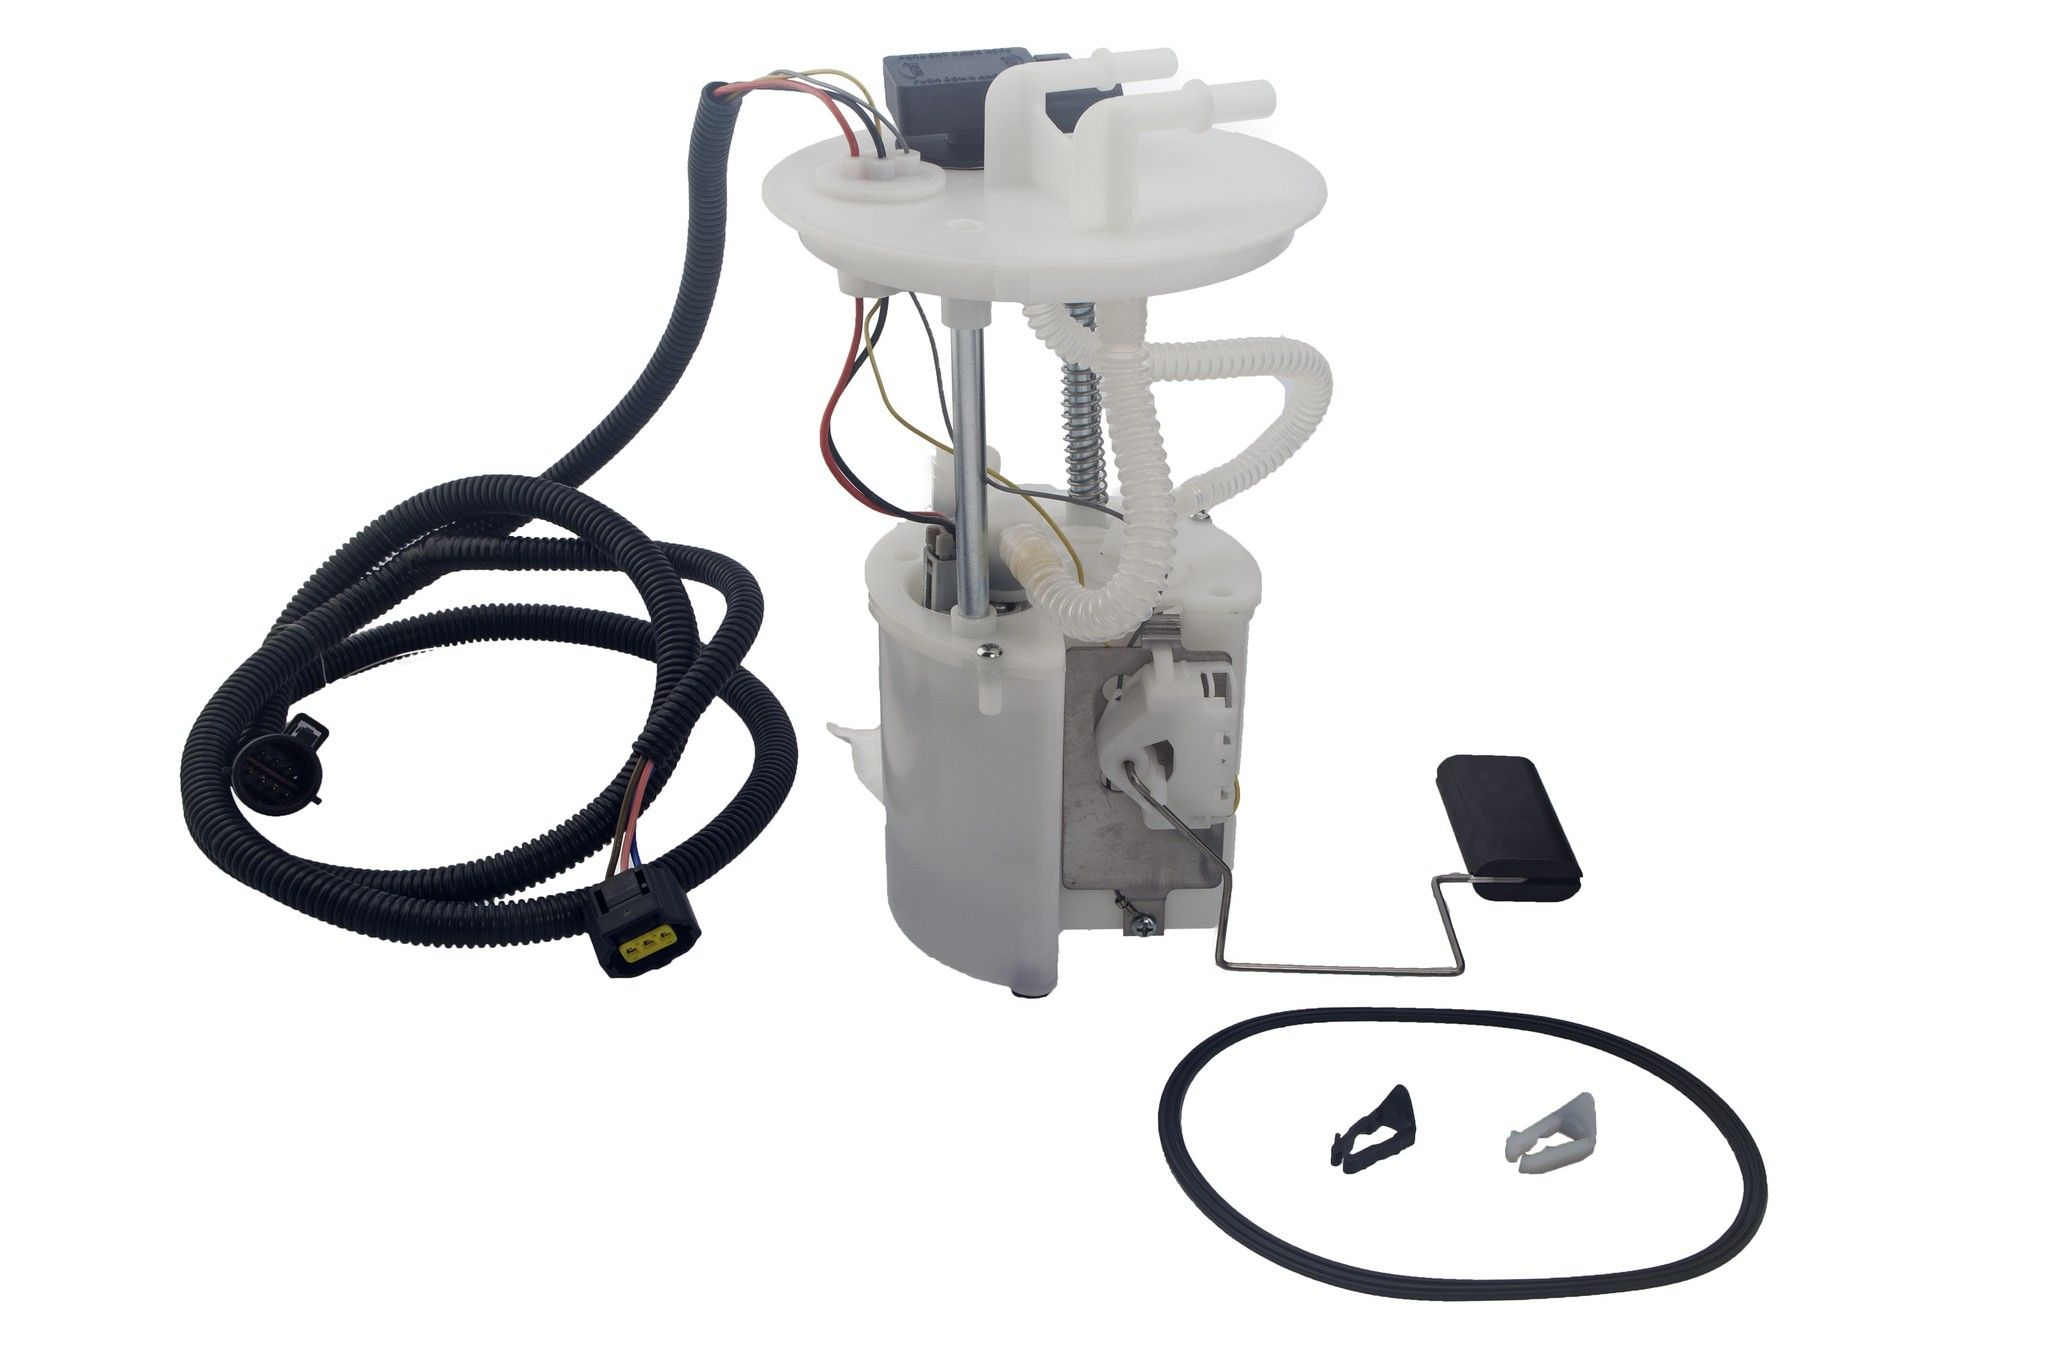 Ford Windstar Fuel Pump Module Assembly Replacement Airtex Filter 2000 6 Cyl 30l Precise Pumps 402 P2248m